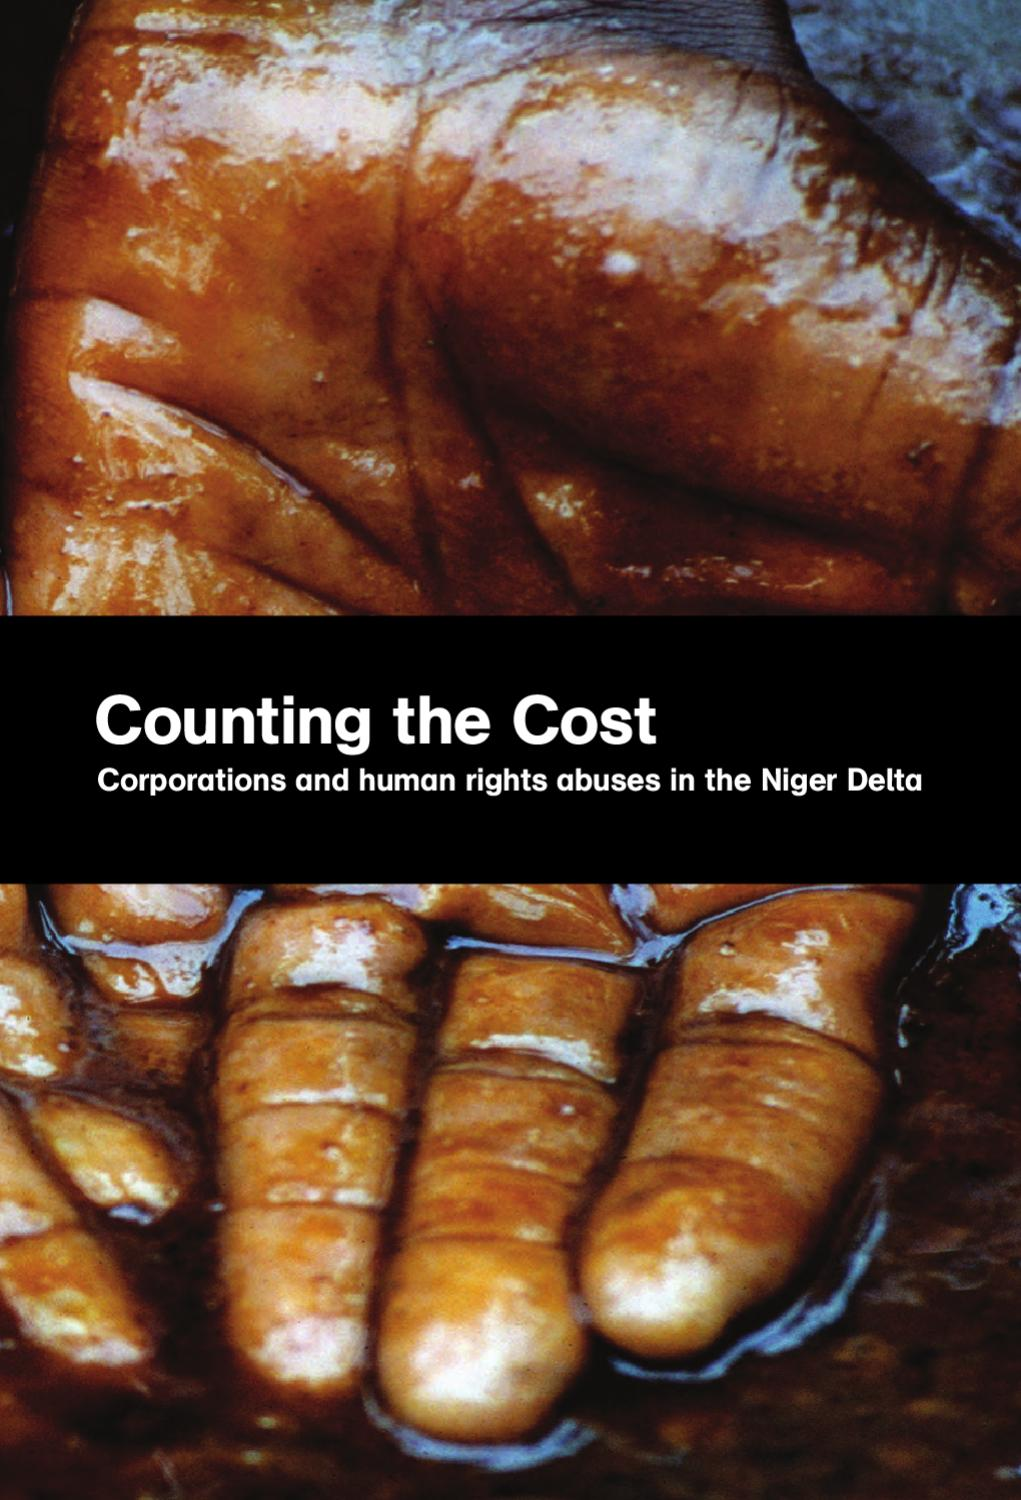 Counting the Cost: corporations and human rights abuses in the Niger